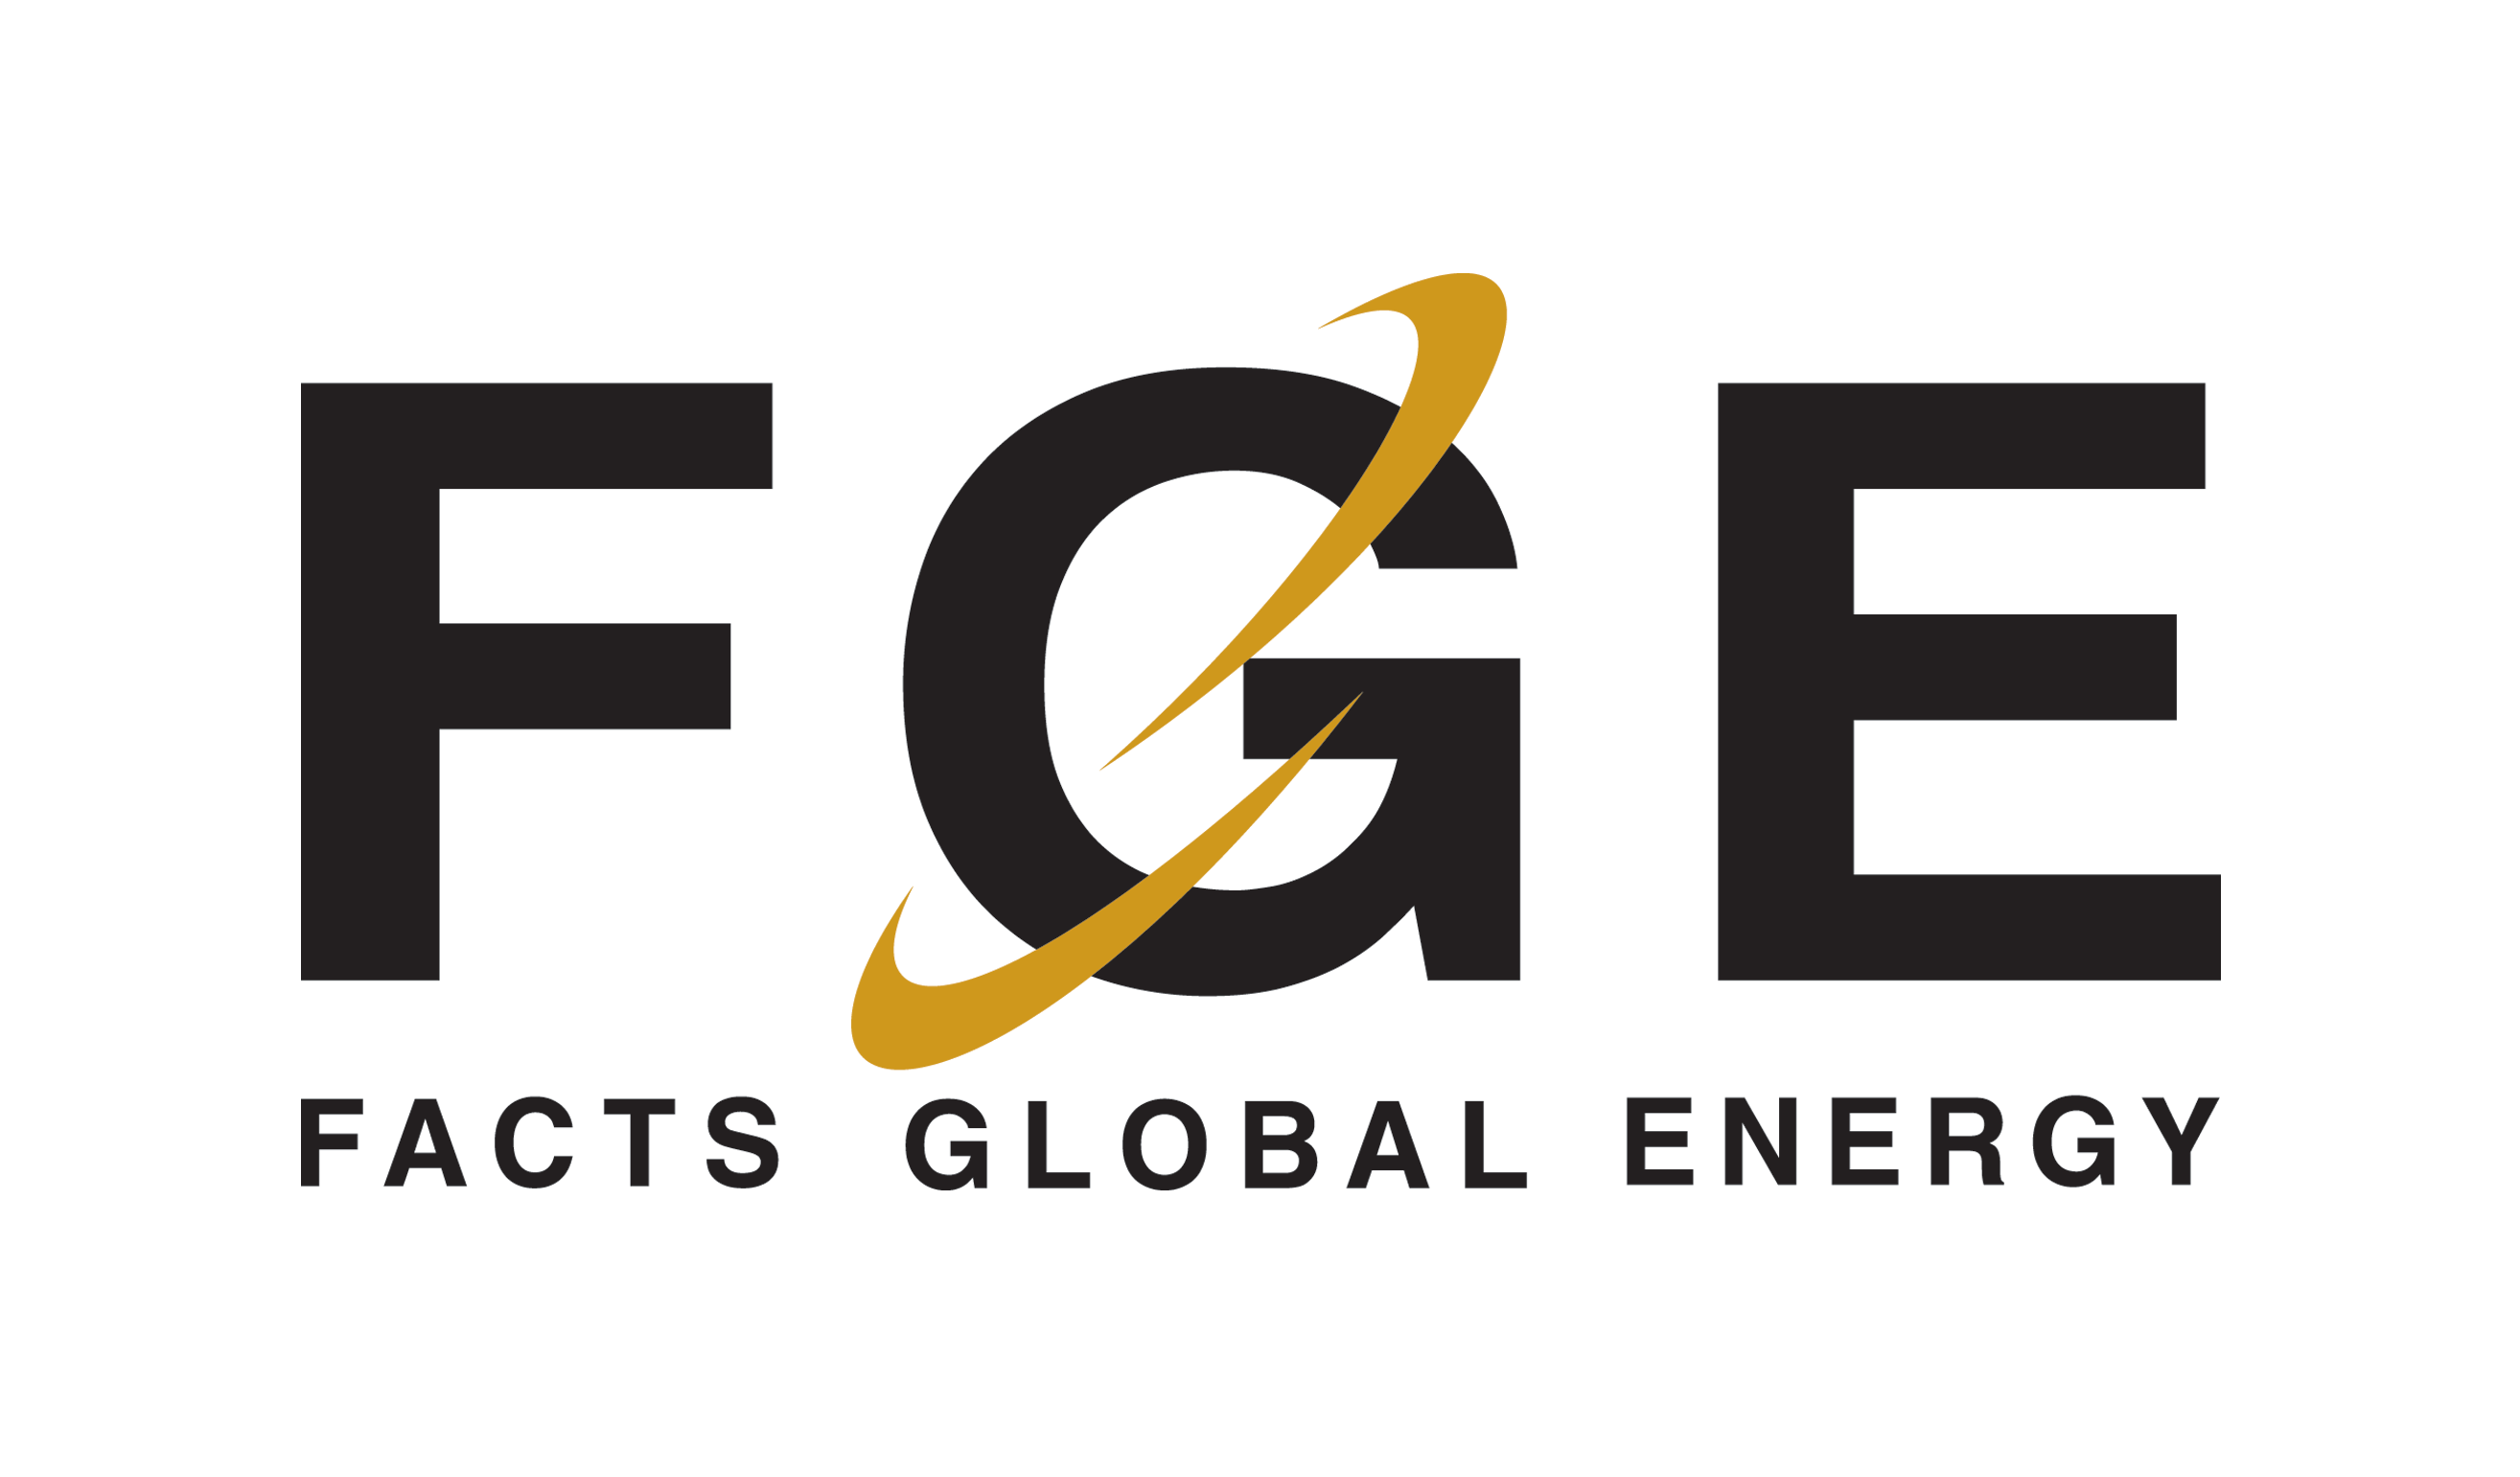 FGE - Energy consultants, Oil, Gas/LNG, and NGLs